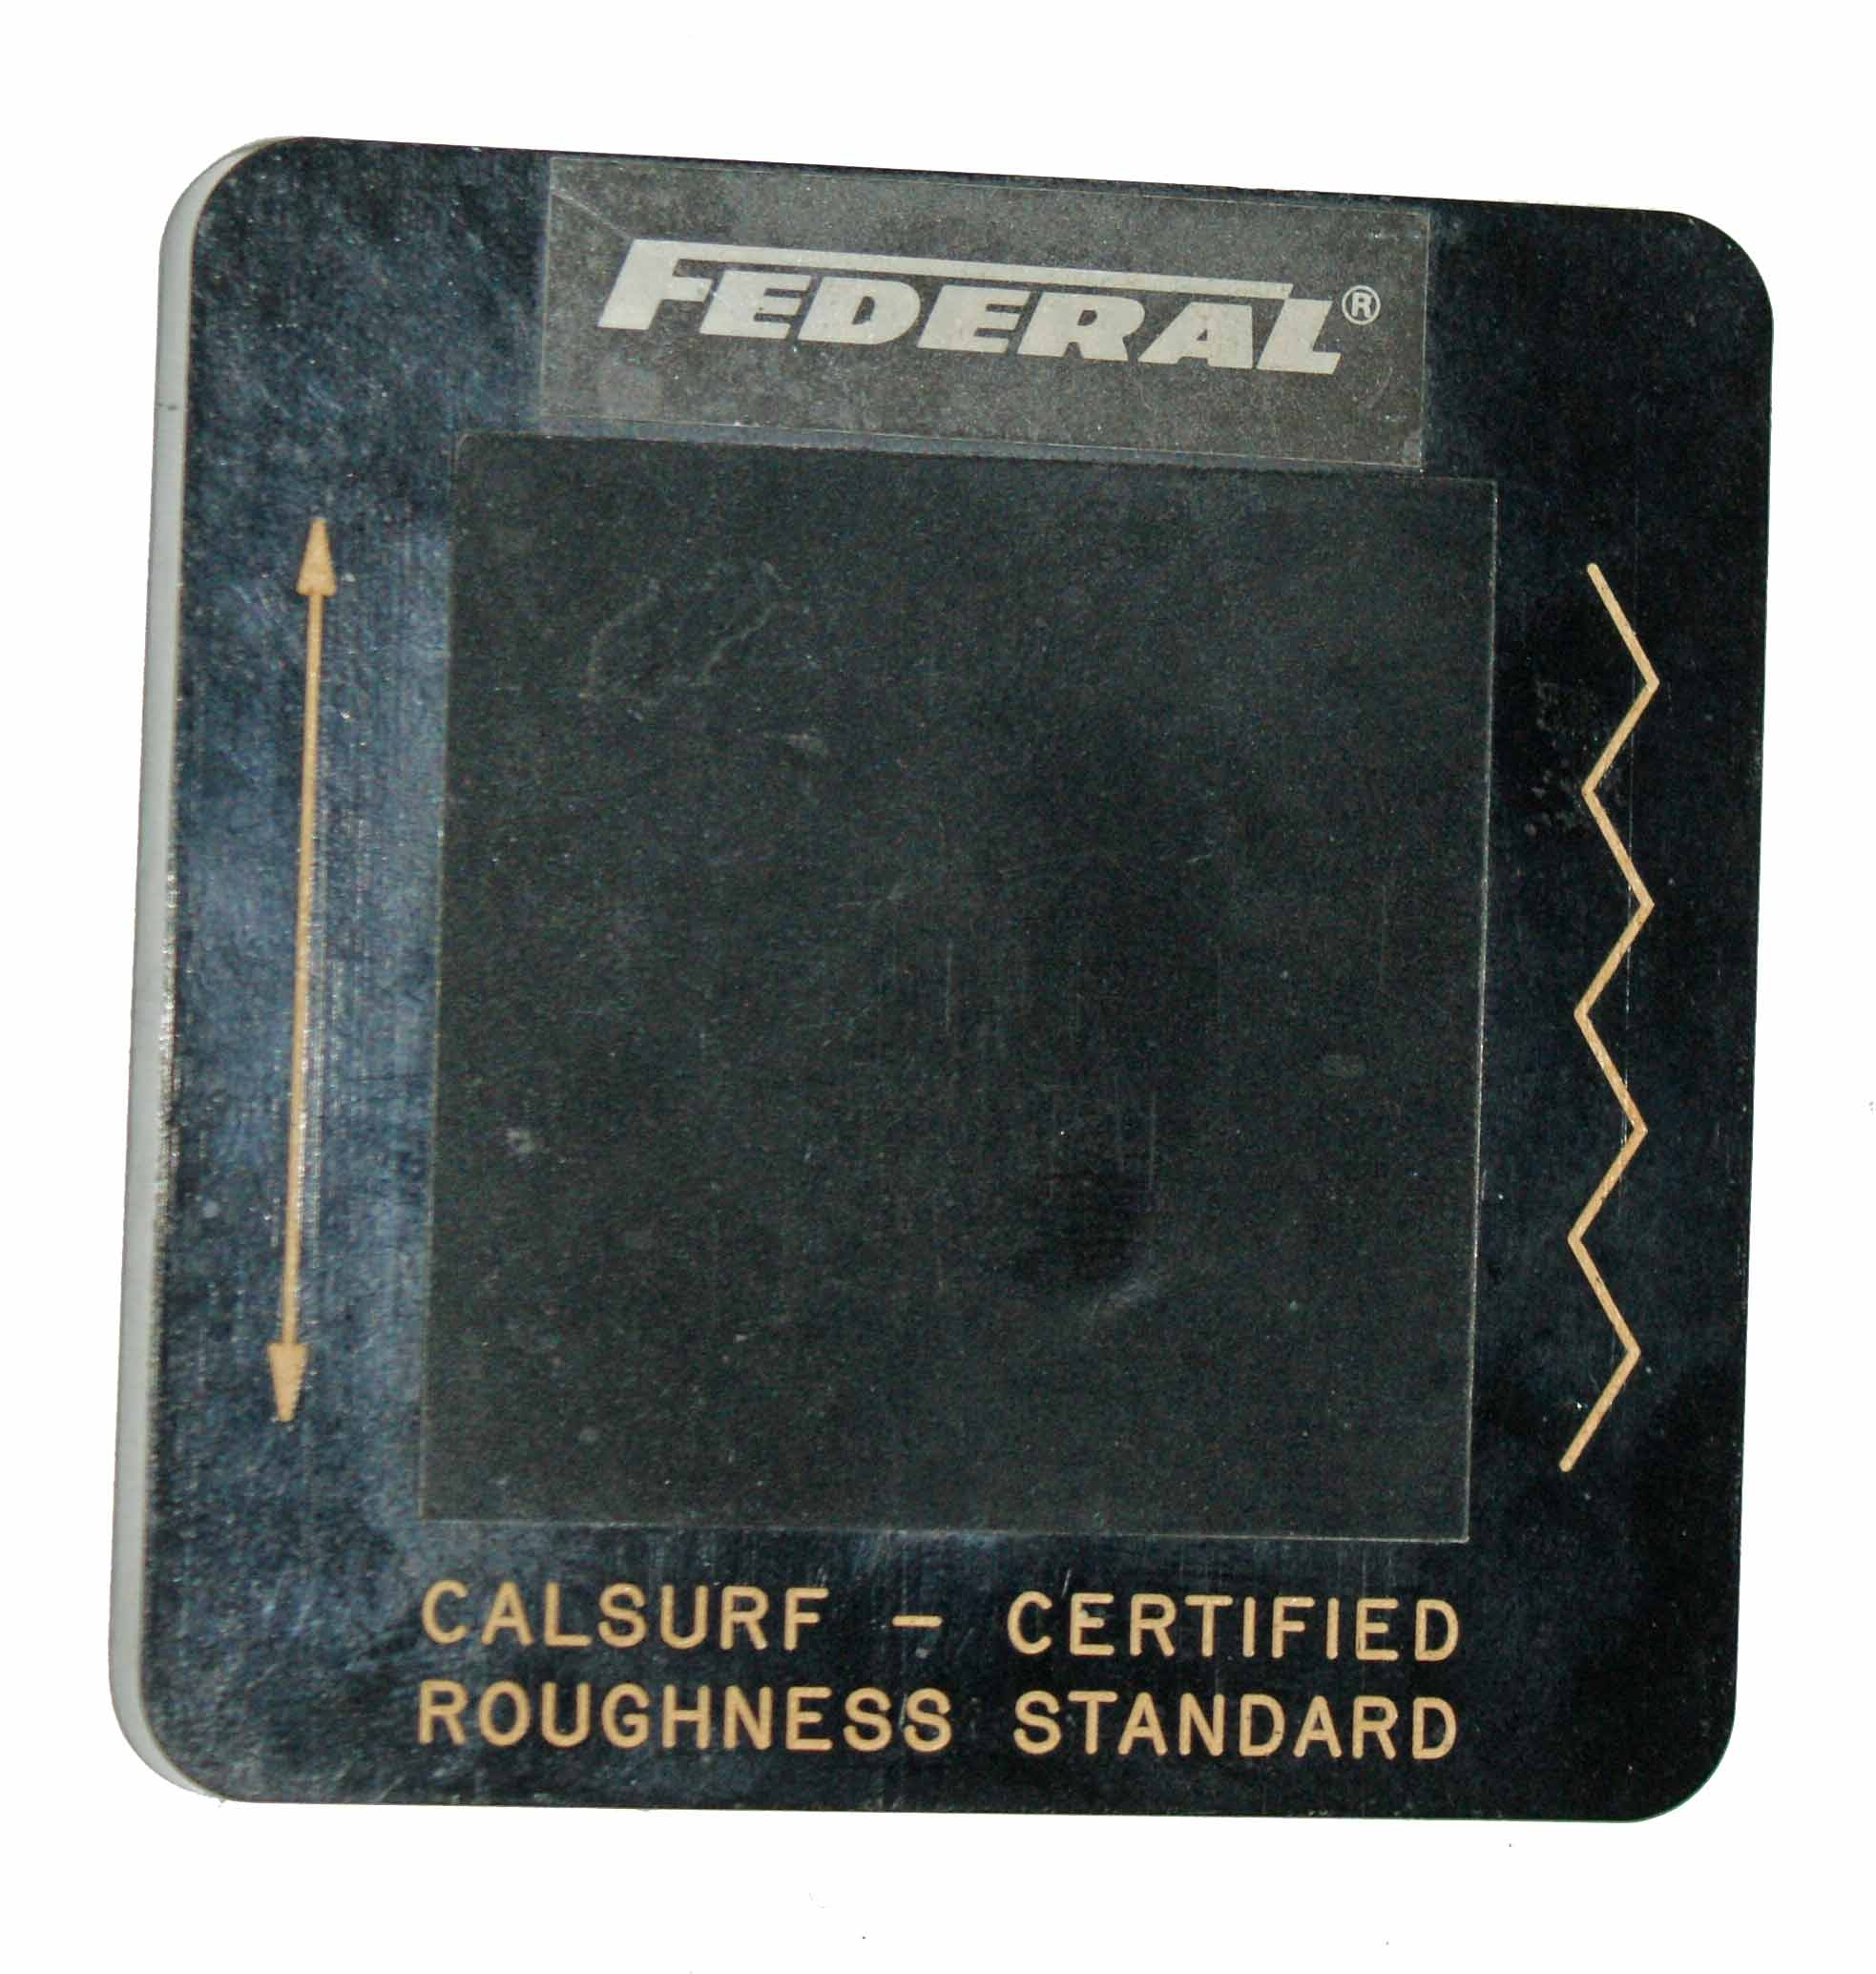 Federal Calsurf Roughness Standard PMD-90101